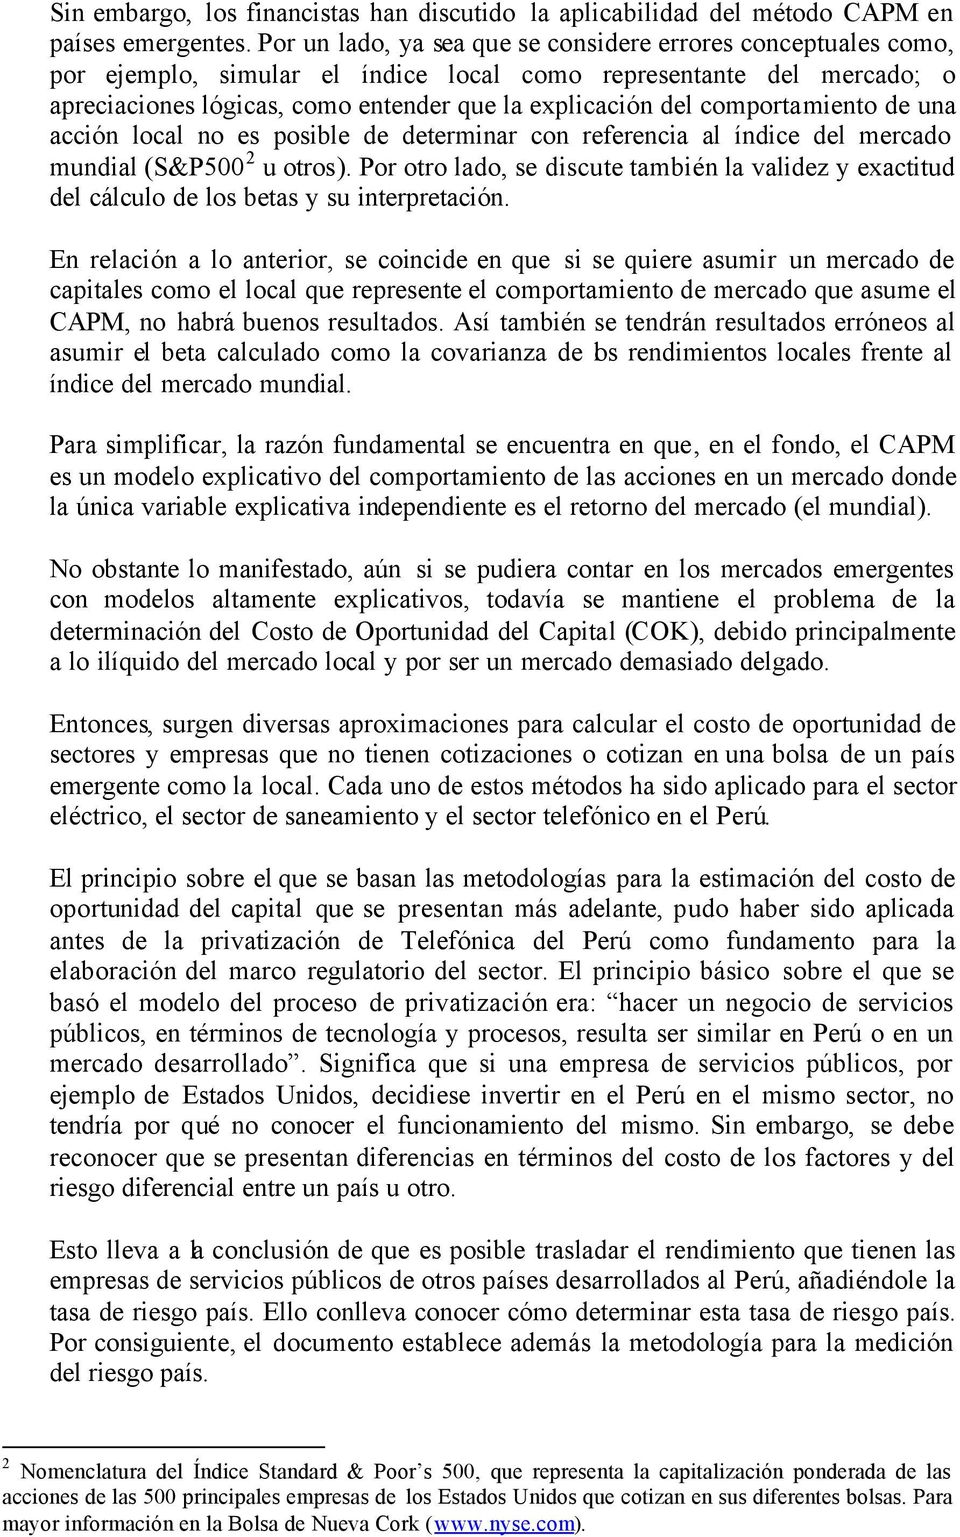 comportamiento de una acción local no es posible de determinar con referencia al índice del mercado mundial (S&P500 2 u otros).